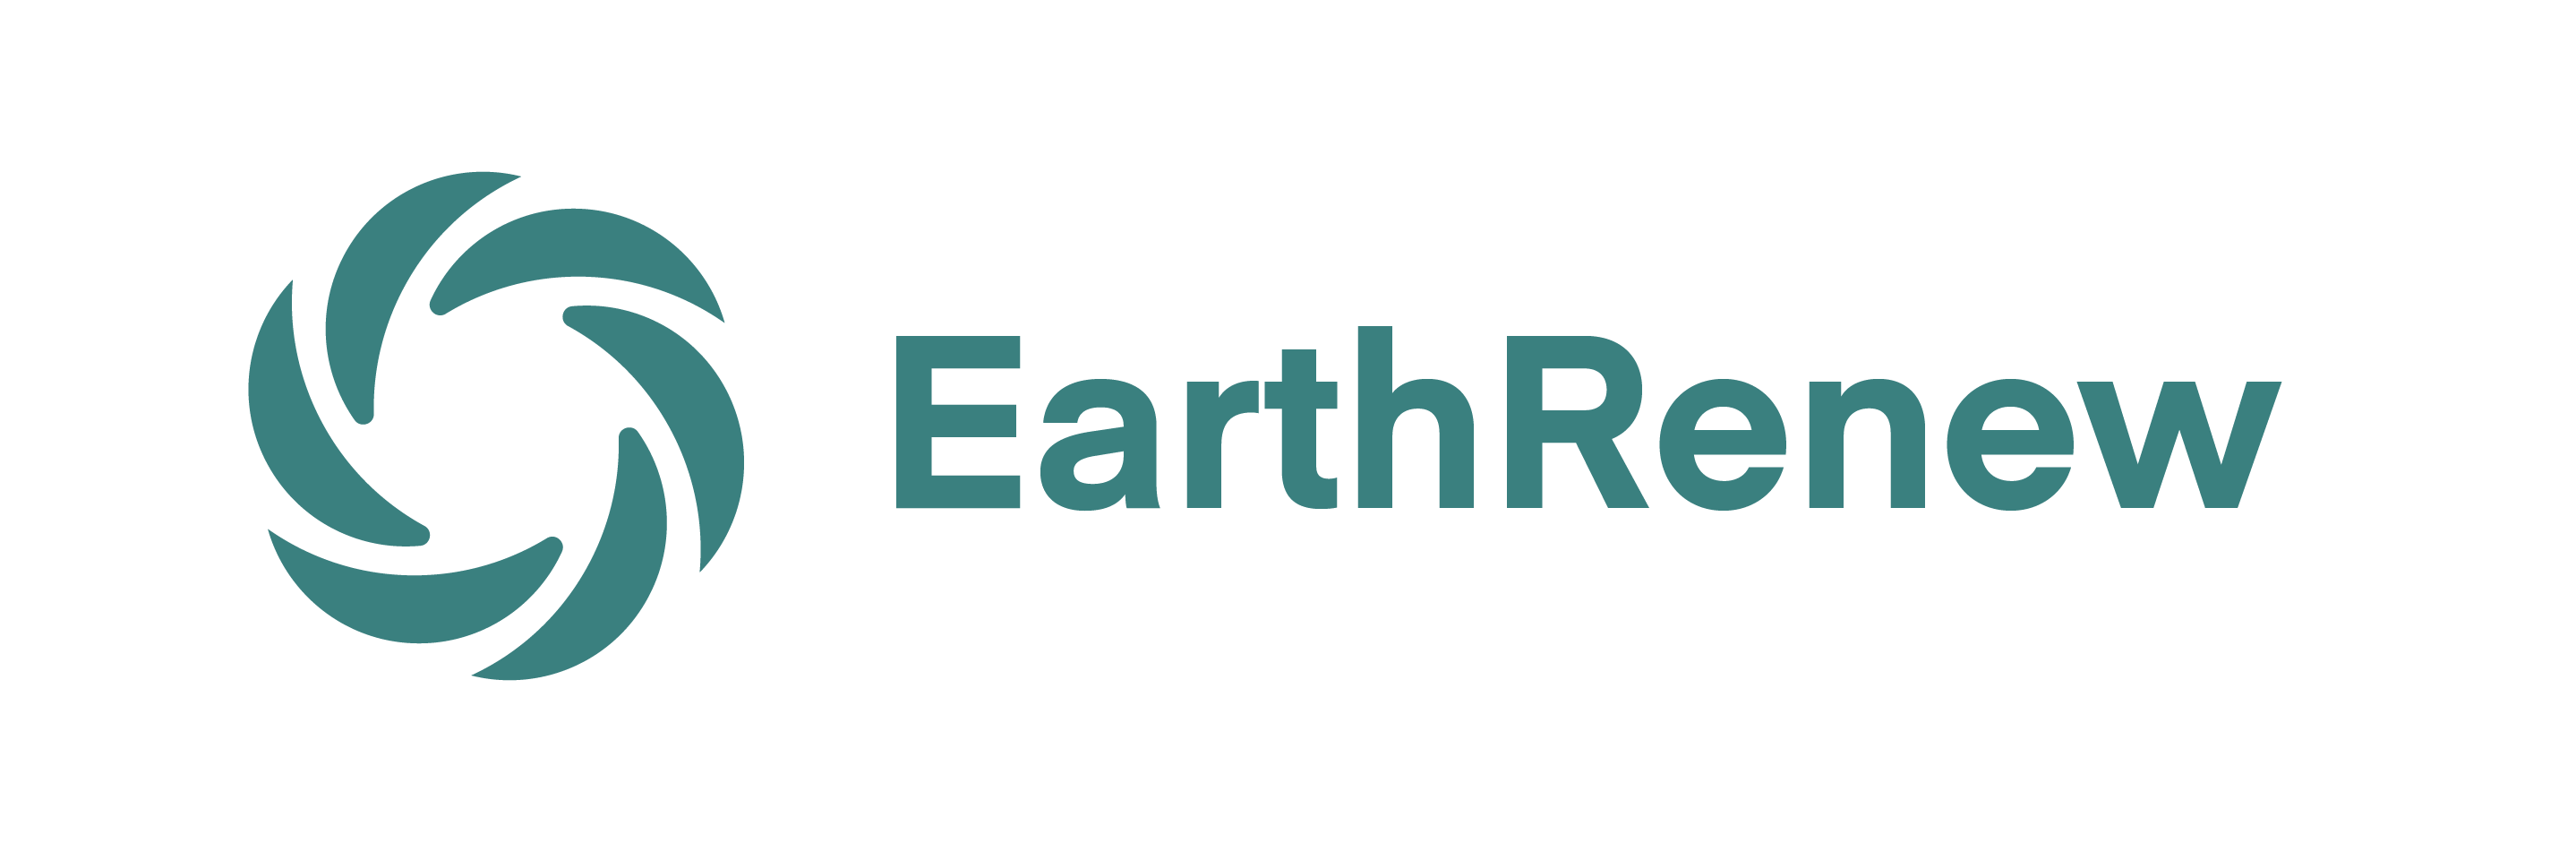 EarthRenew Signs Letter of Intent for New Facility on 50,000 Head Feedlot in Colorado